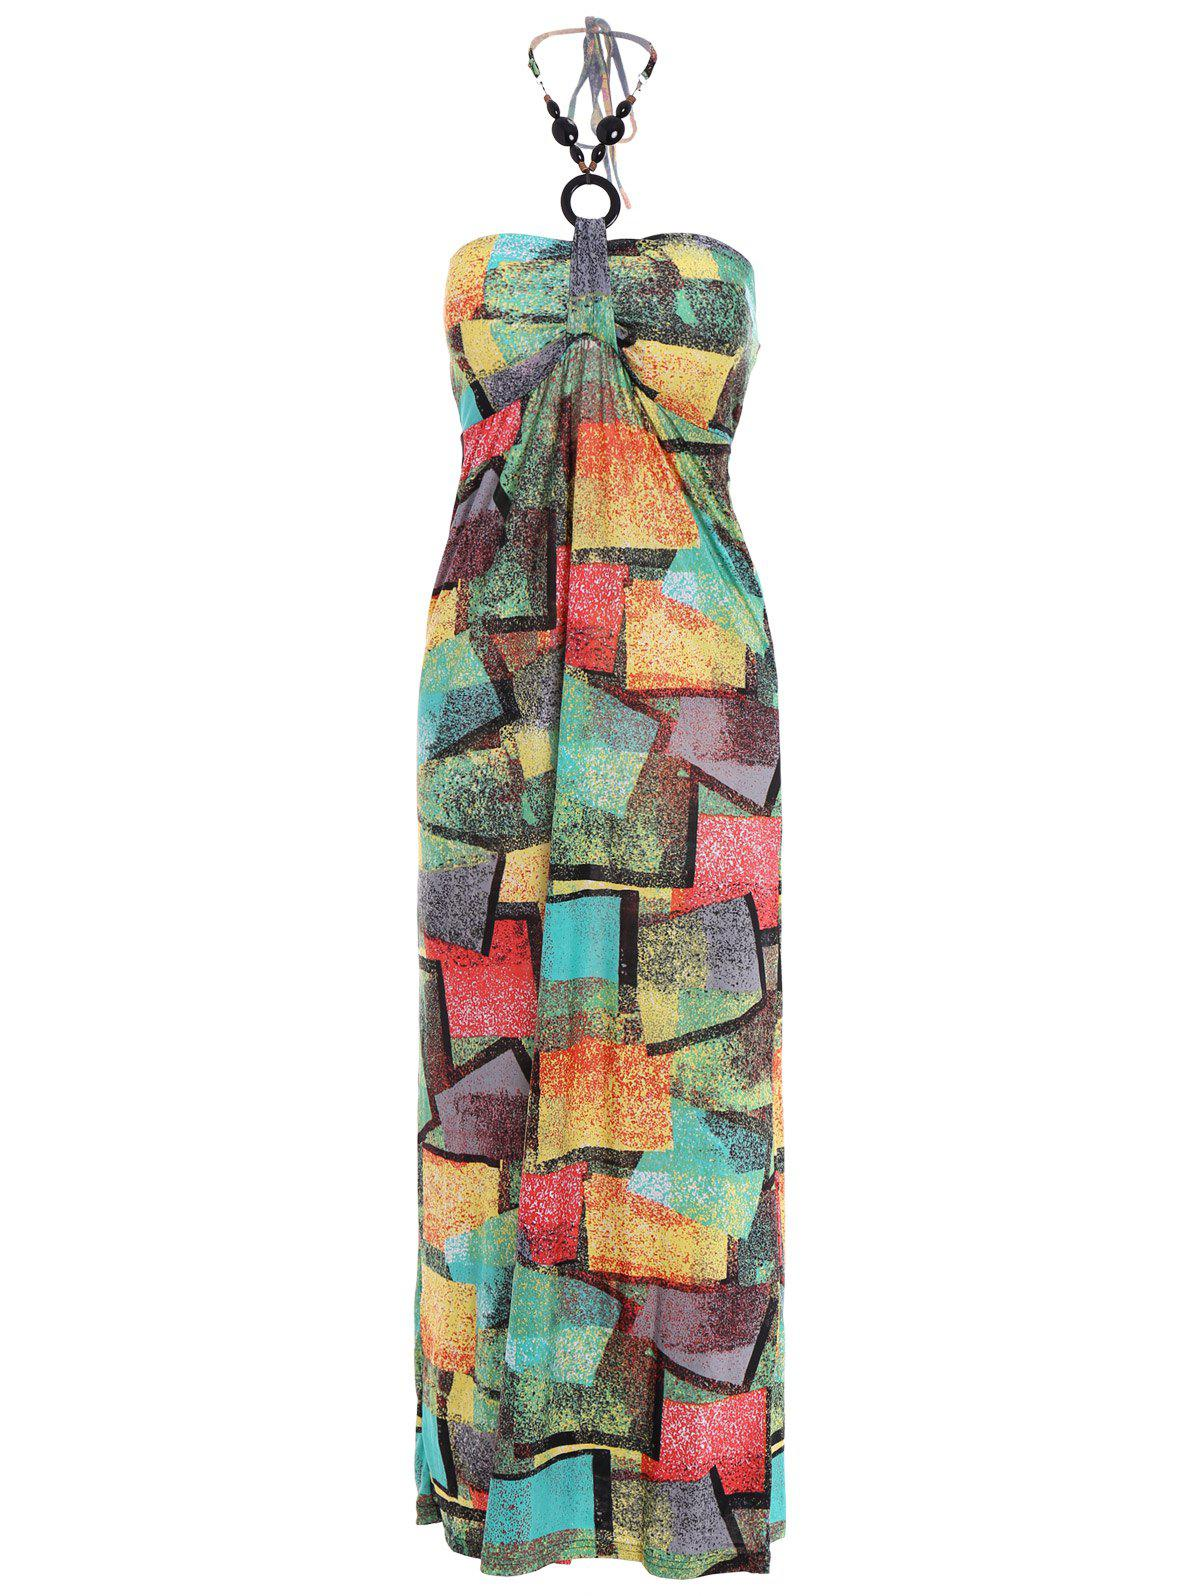 Bohemian Halter Neck Sleeveless Printed Women's Dress